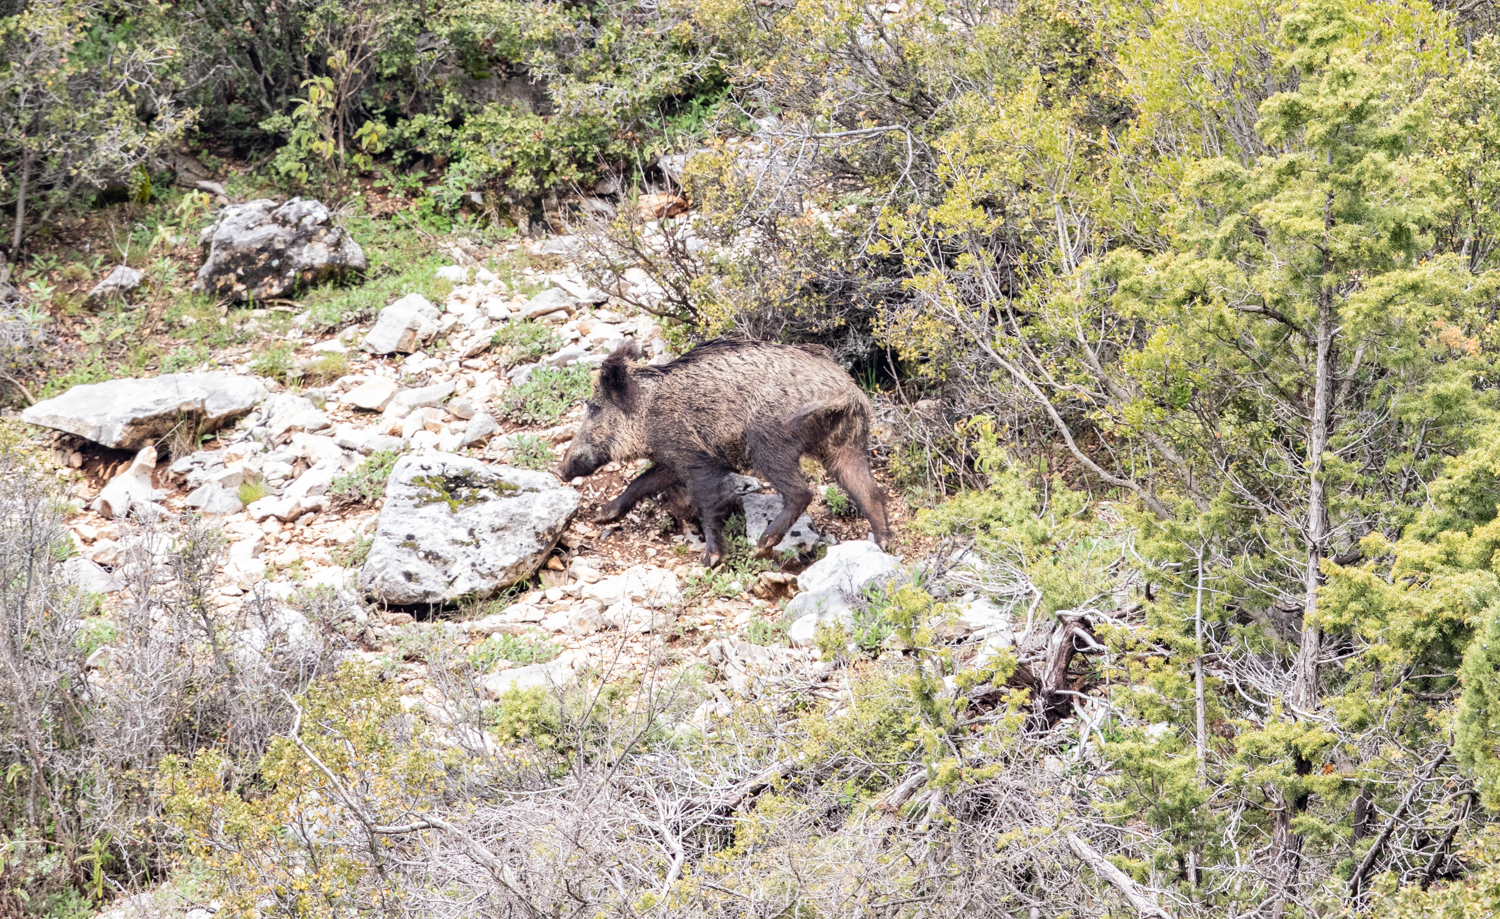 Huge wild boar that I spooked